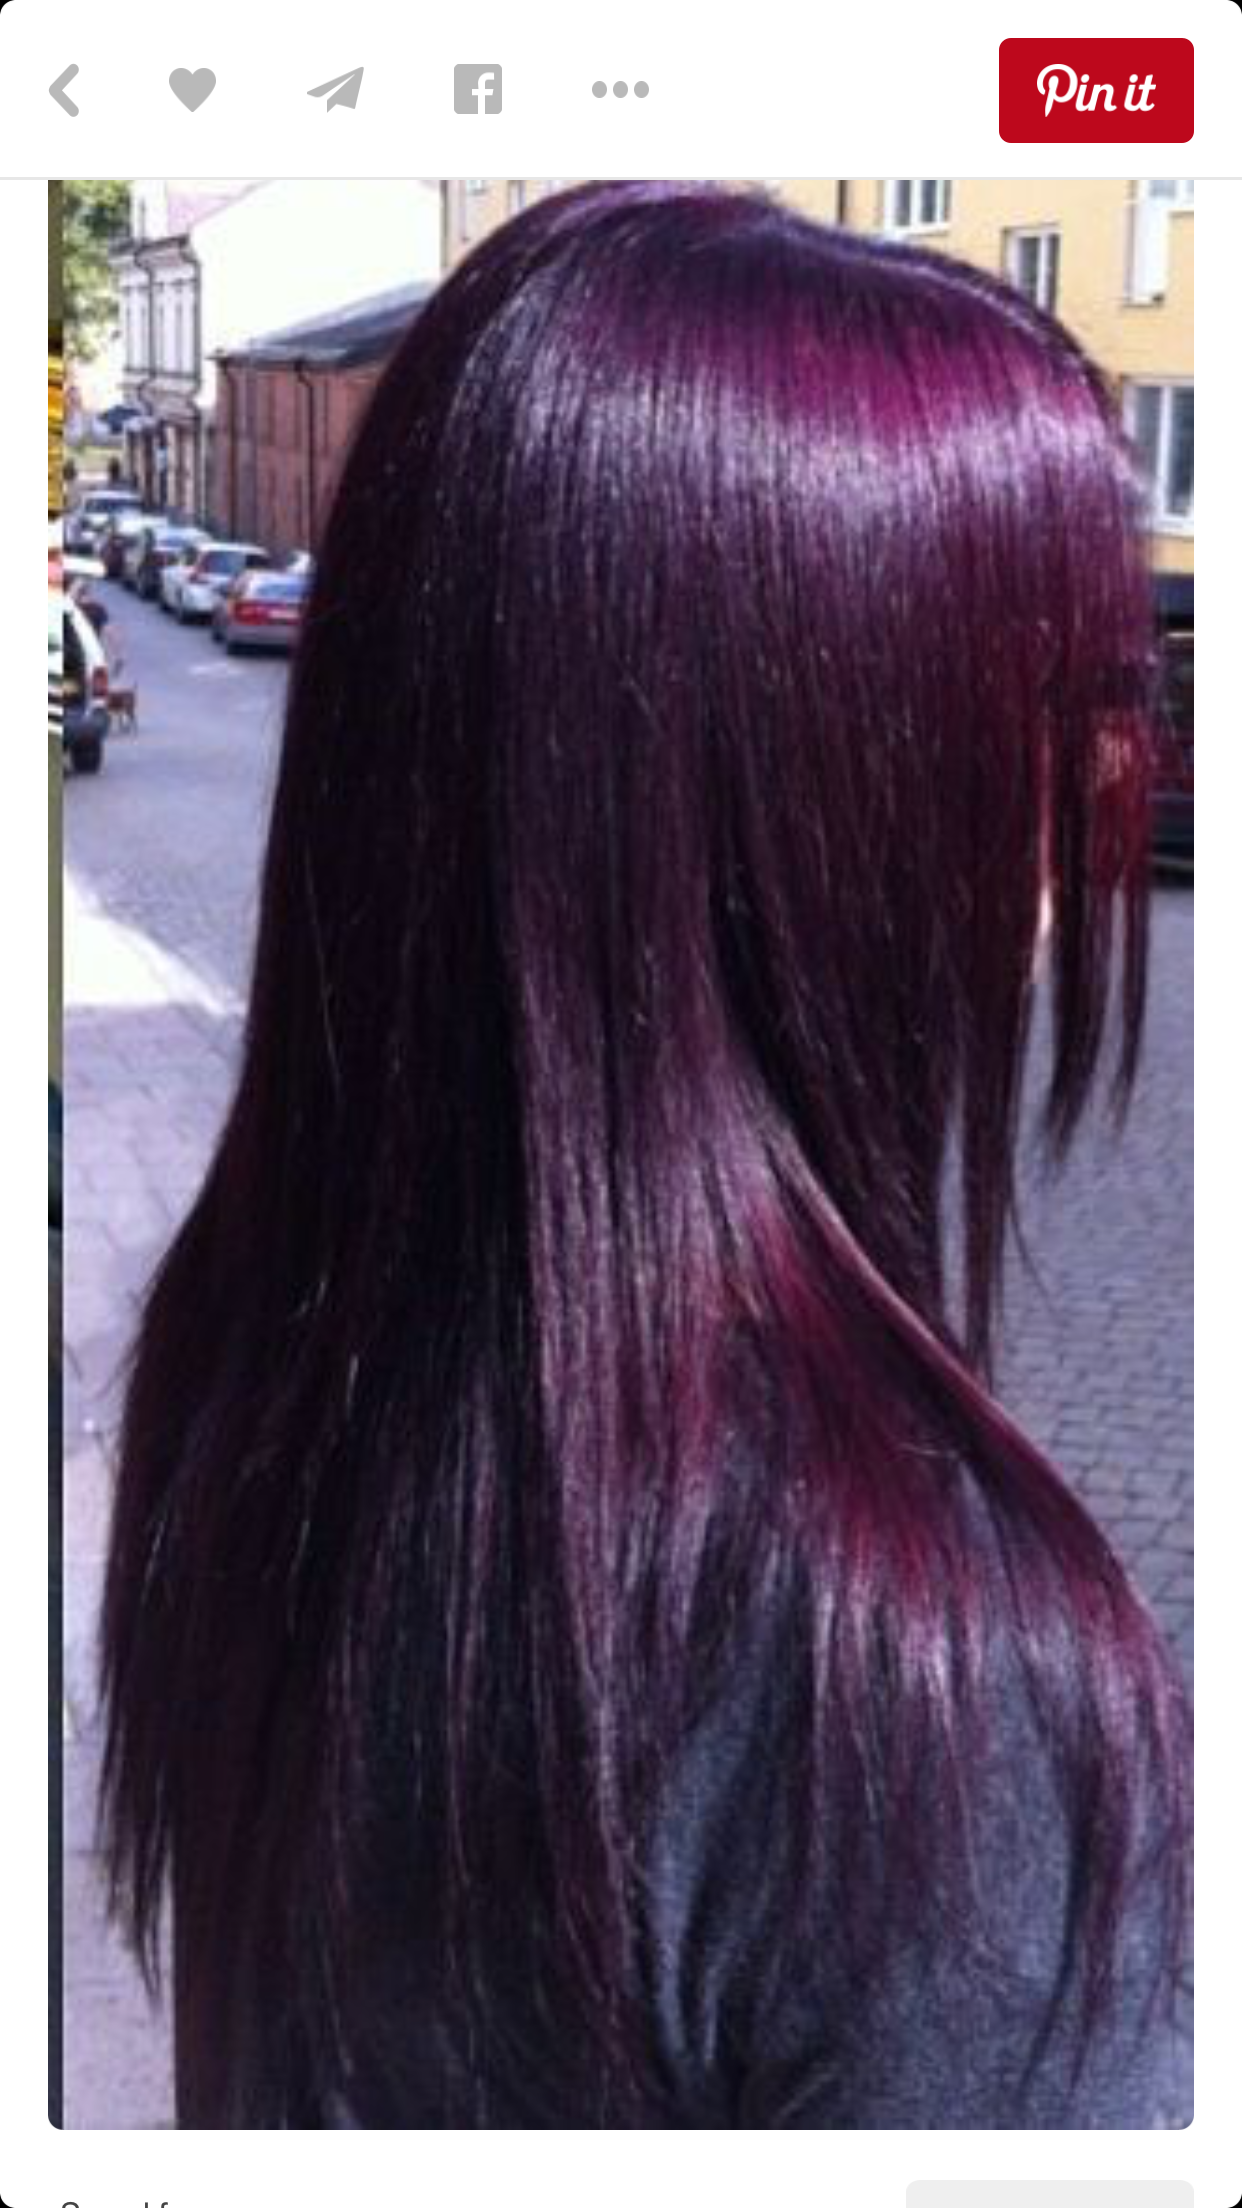 Purple hair (velvet hair dye): new ideas and trends 2019 forecasting